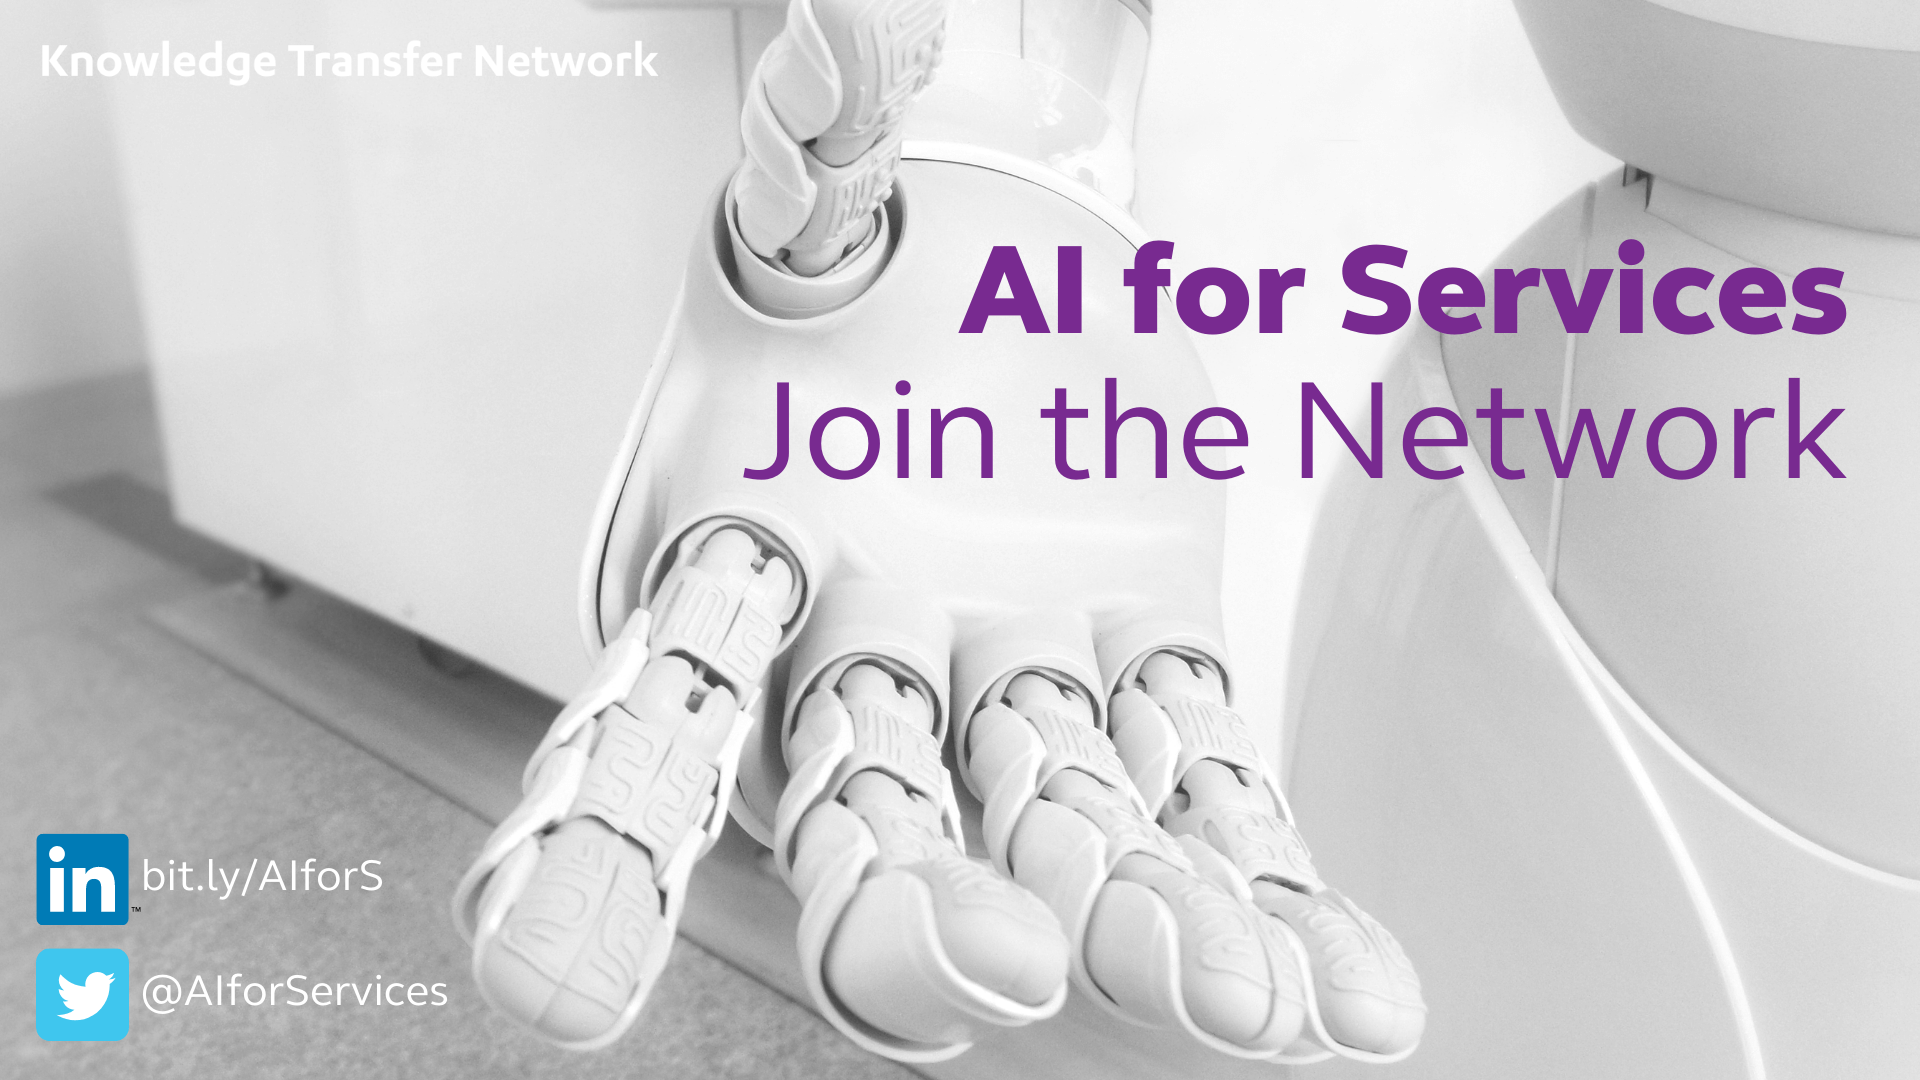 AI for Services: Join the Network